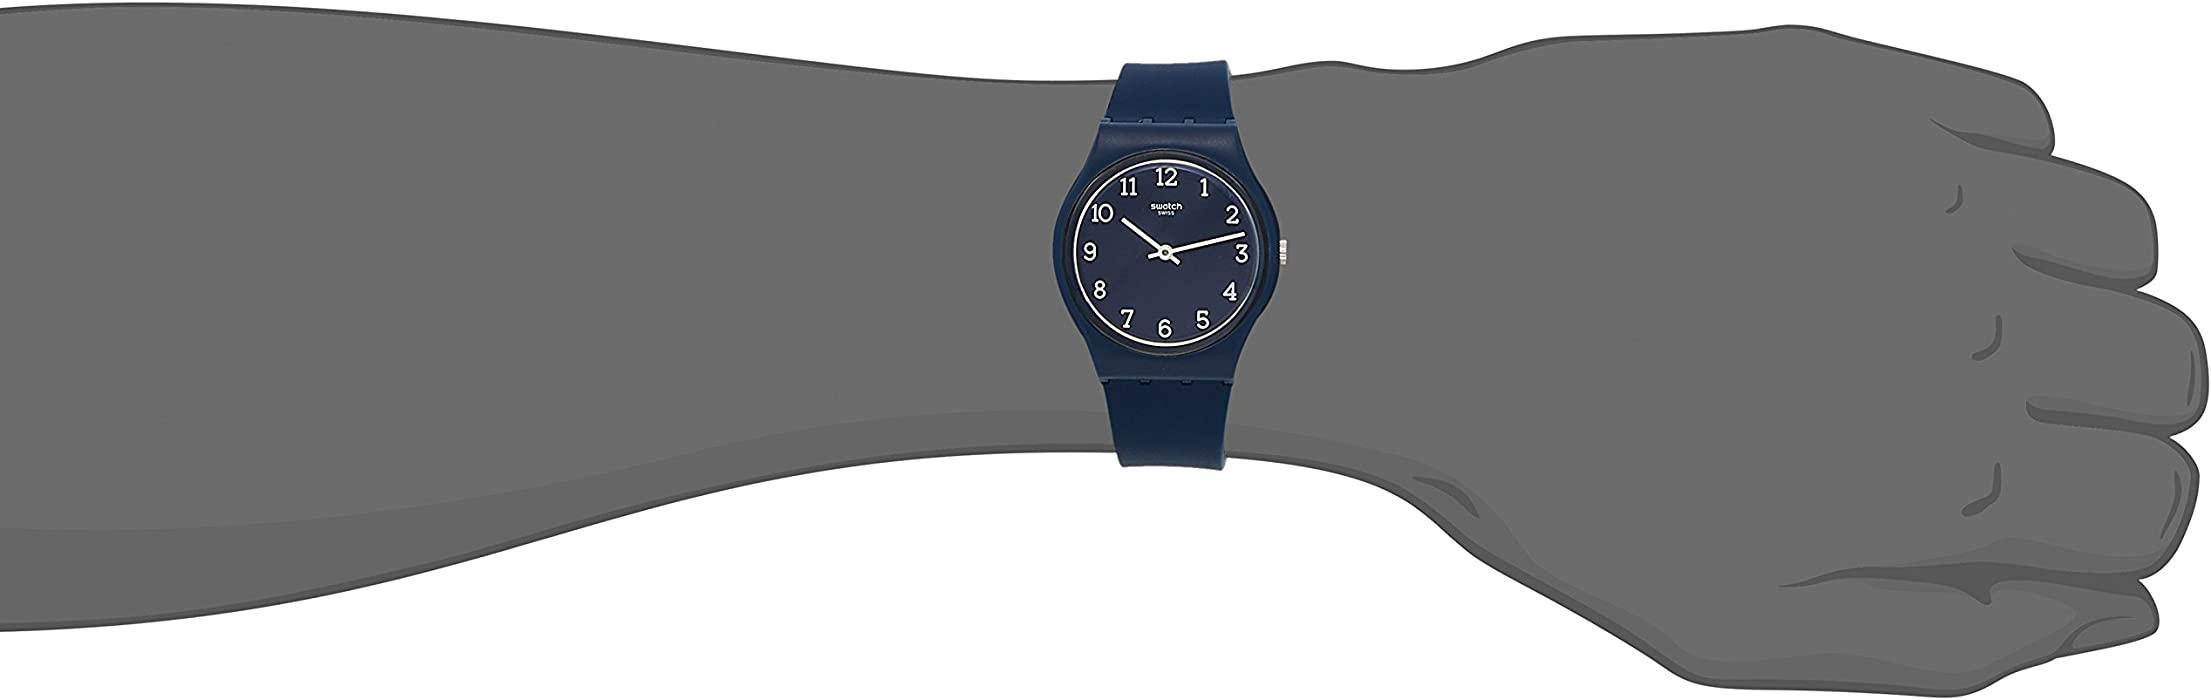 ec422ffb37e Amazon.com  Swatch Originals Blueway Blue Dial Silicone Strap Unisex ...